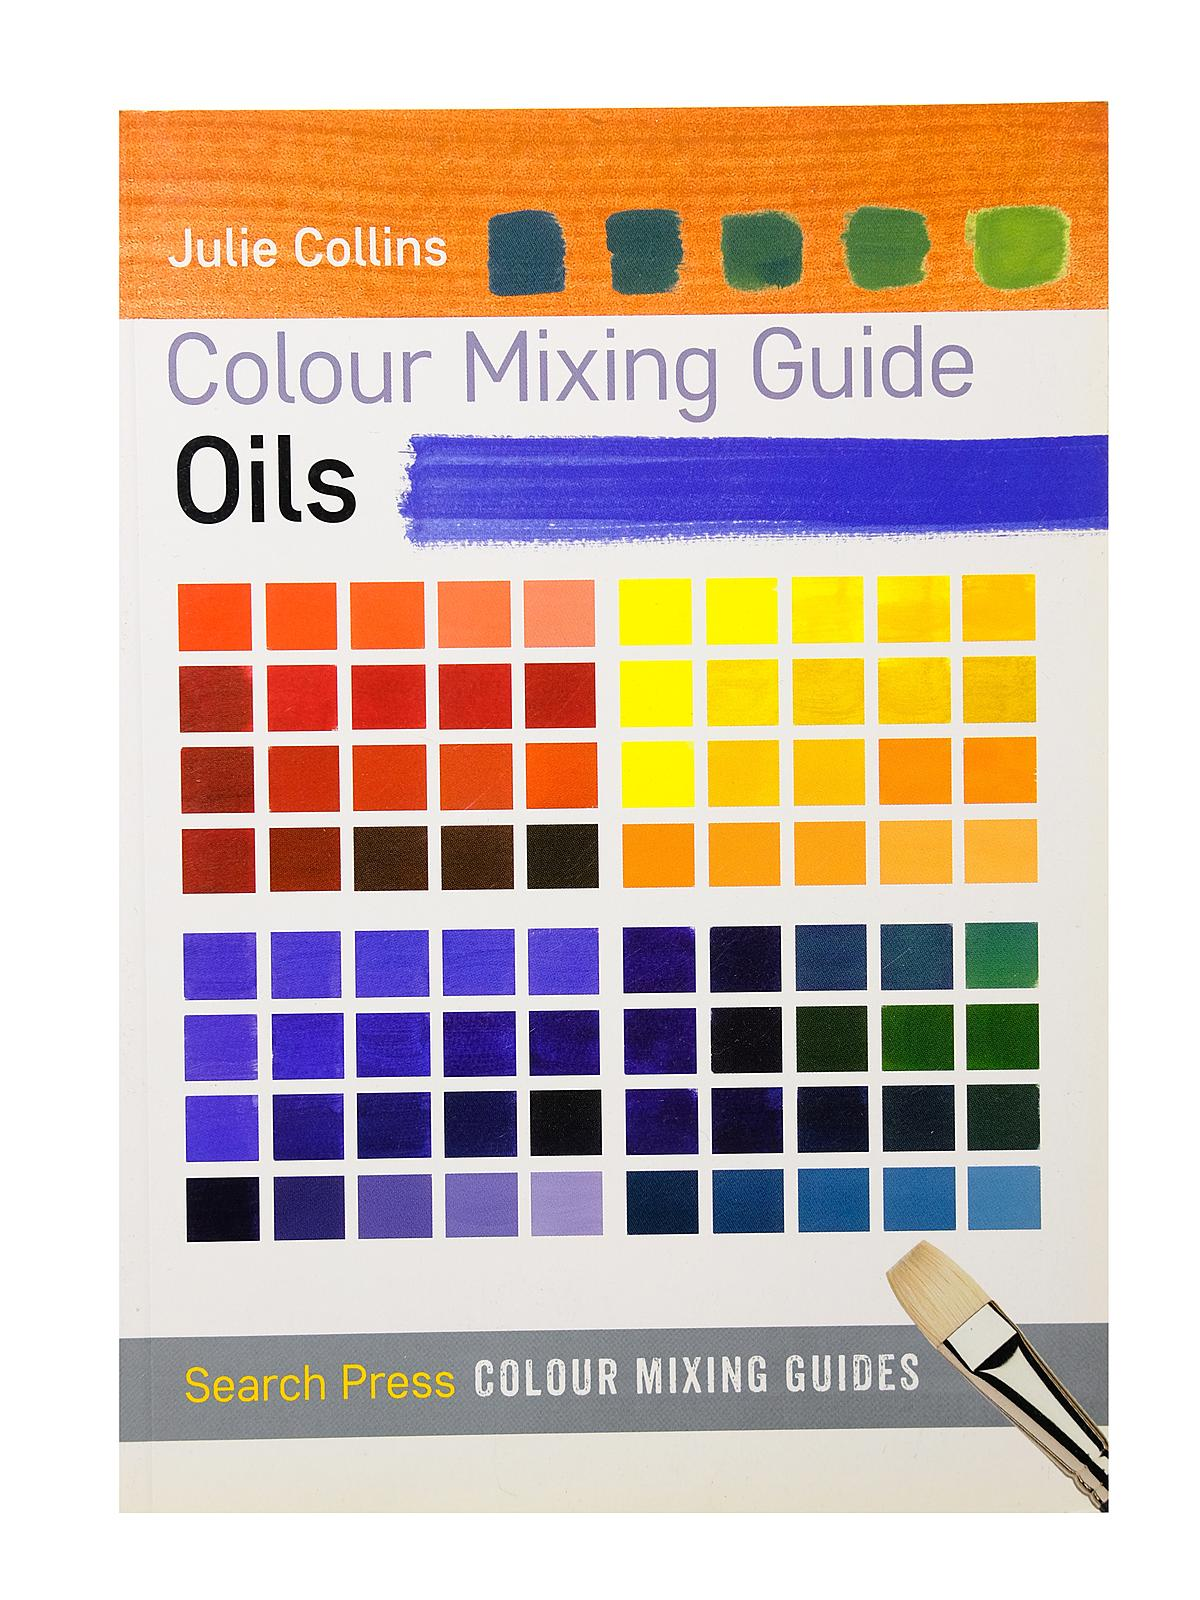 Colour Mixing Guide: Oils